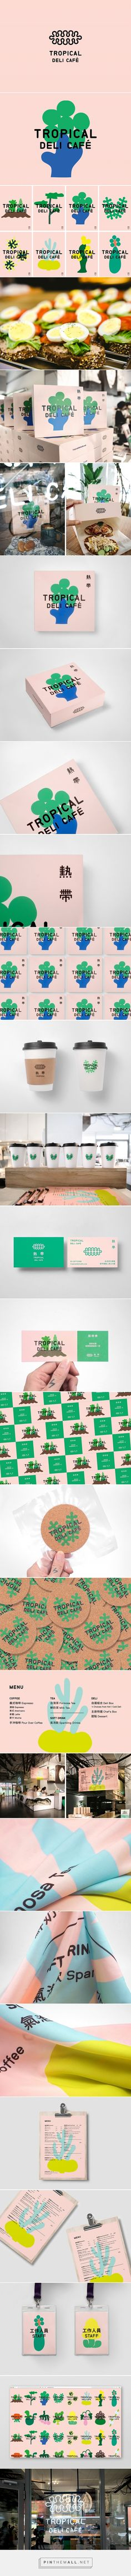 Tropical Deli Café Branding and Menu Design by Jay Guan-Jie Peng | Fivestar Branding Agency – Design and Branding Agency & Curated Inspiration Gallery